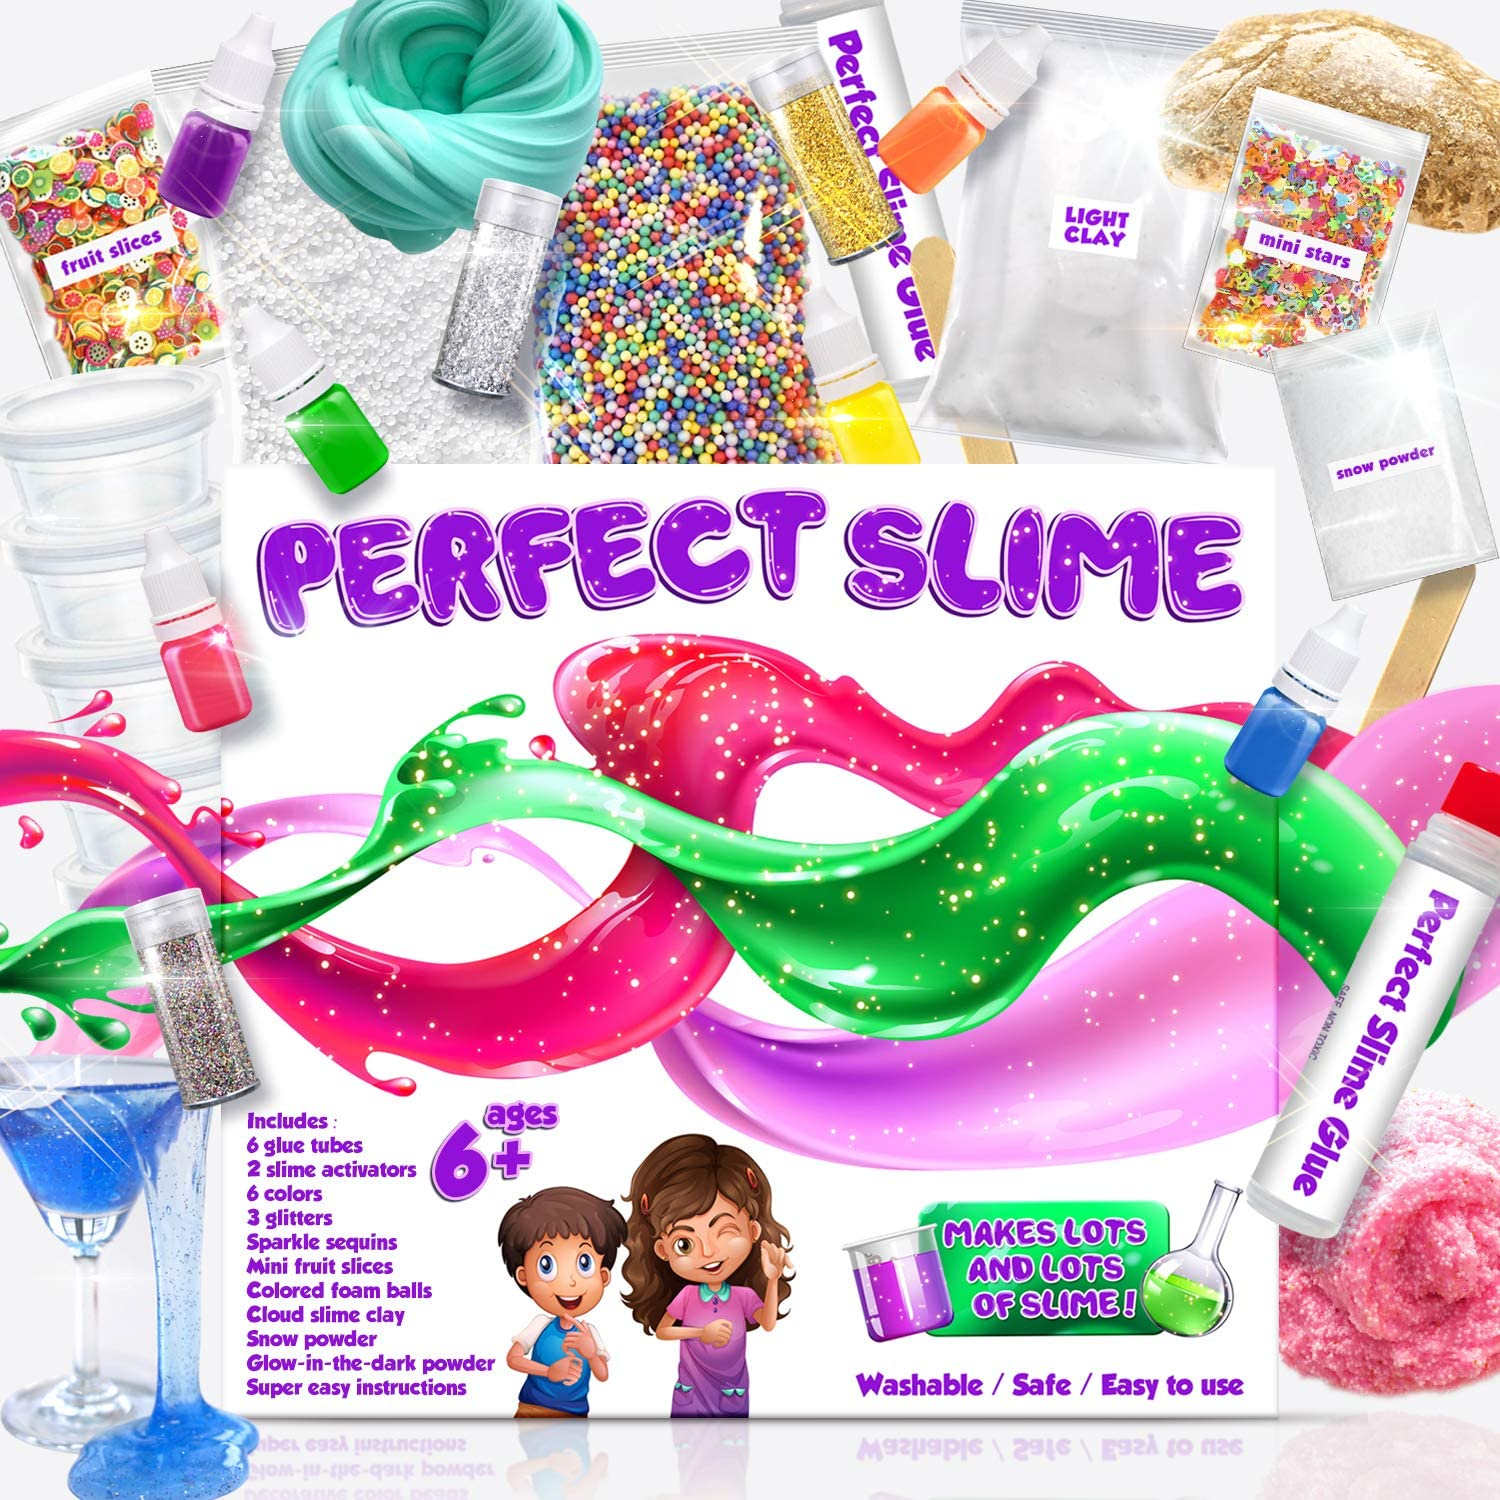 Slime Kit for Awesome Kids – Everything In 1 Box, DIY, All Ages, Clear Slime, Cloud Slime, Glitter, Crunchy, Snow Slime, Glow in Dark, and Gold Slime. Easy Instructions, Perfect Results Every Time